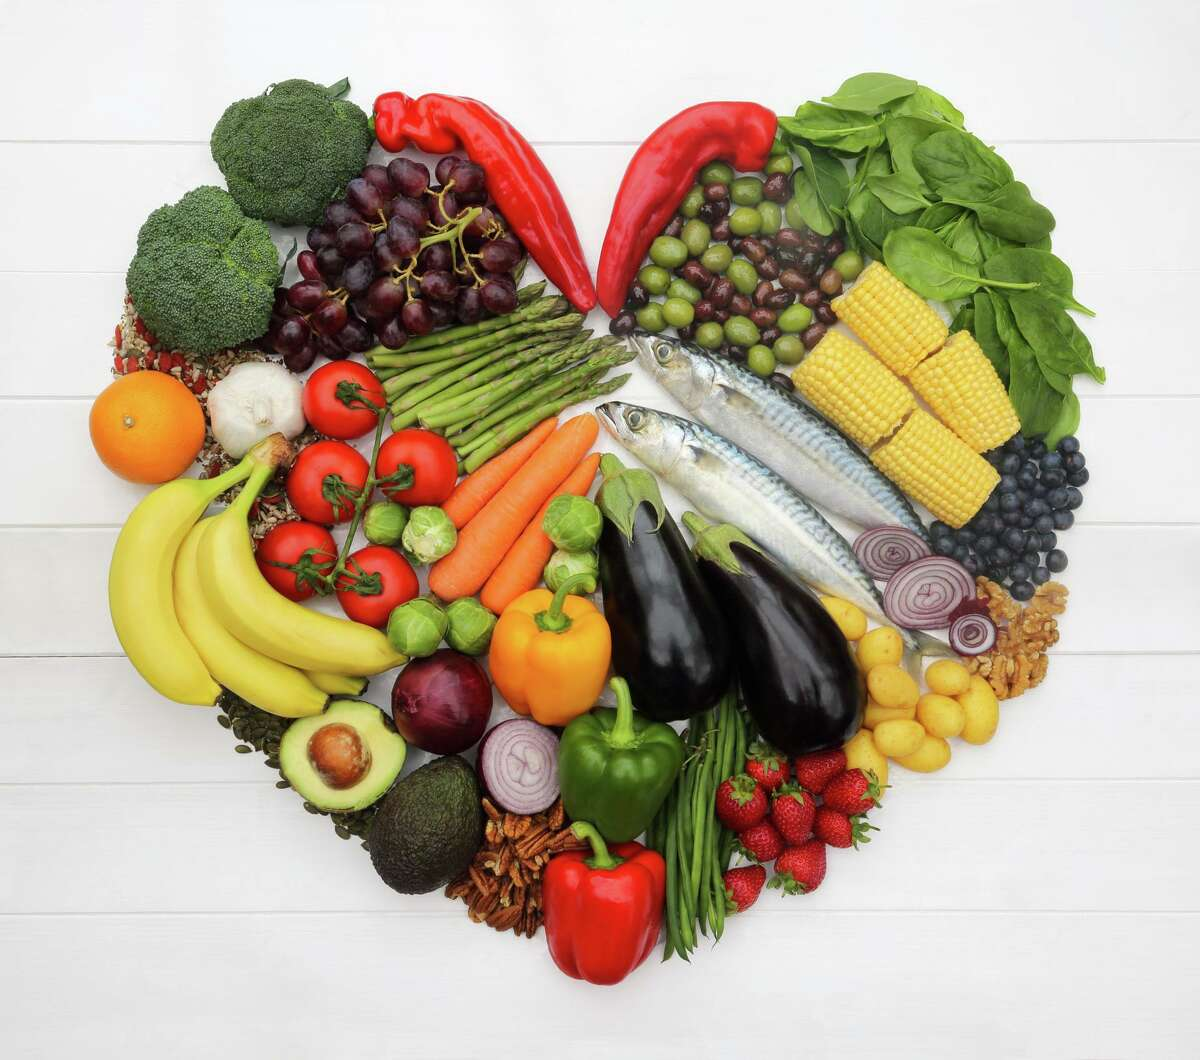 Healthy foods, which make up part of a Mediterranean diet, arranged to create a heart-shape, mackerel (fish), Ramiro peppers, bell peppers, tomatoes, nocellara and leccino olives, asparagus, carrots brussel sprouts, aubergines, red onions, avocados, green beans, spinach, corn, brocolli, potatoes, garlic, strawberries, blueberries, red grapes, bananas, orange, pecan nuts, walnuts, pumpkin seeds and mixed seeds.